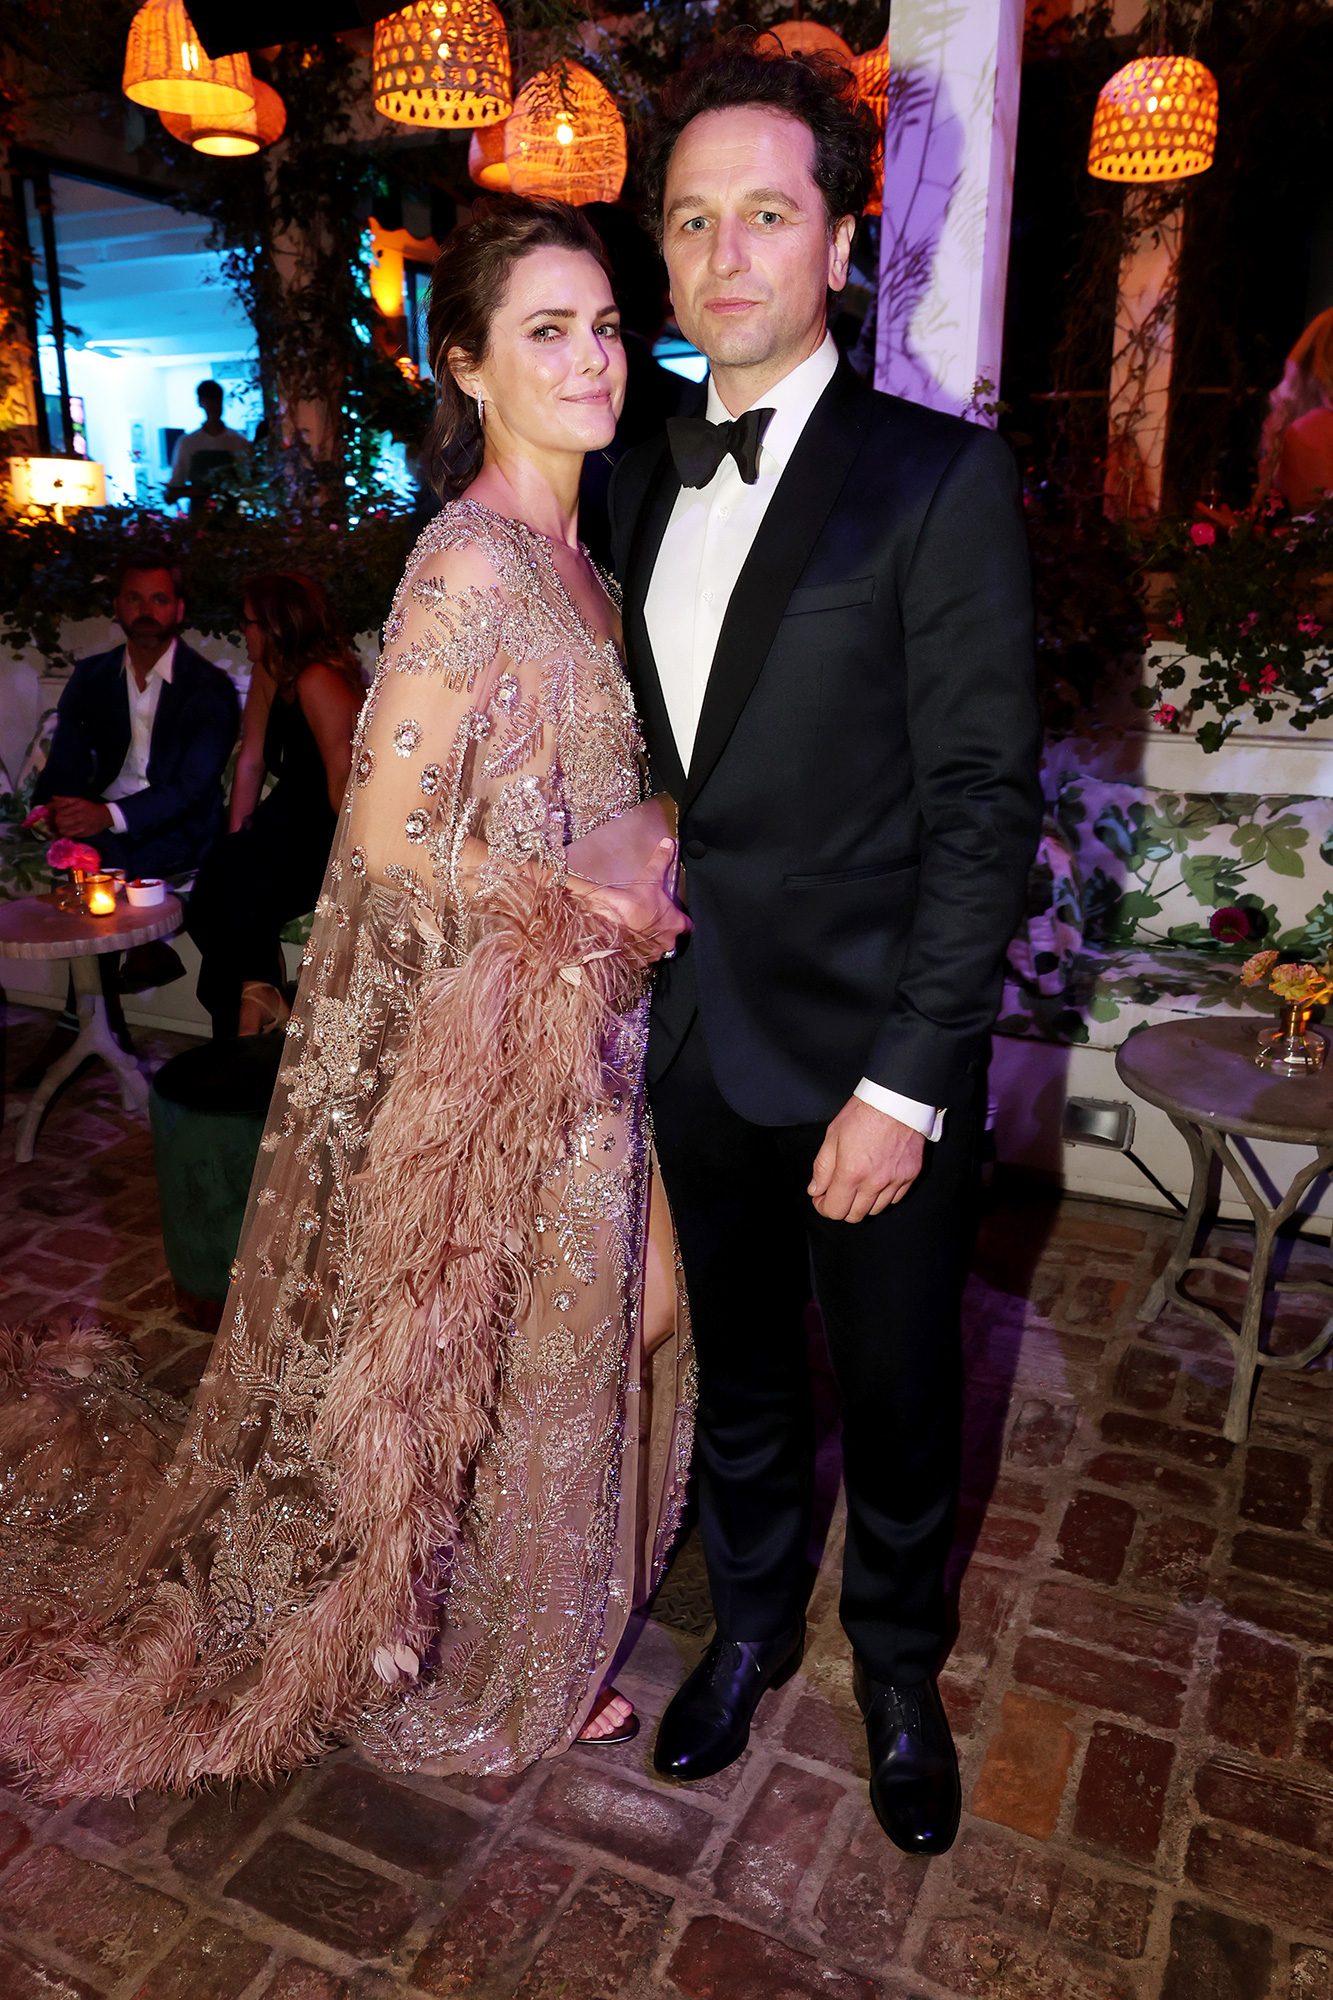 Keri Russell and Matthew Rhys attend the HBO/ HBO Max Post Emmys Reception at San Vicente Bungalows on September 19, 2021